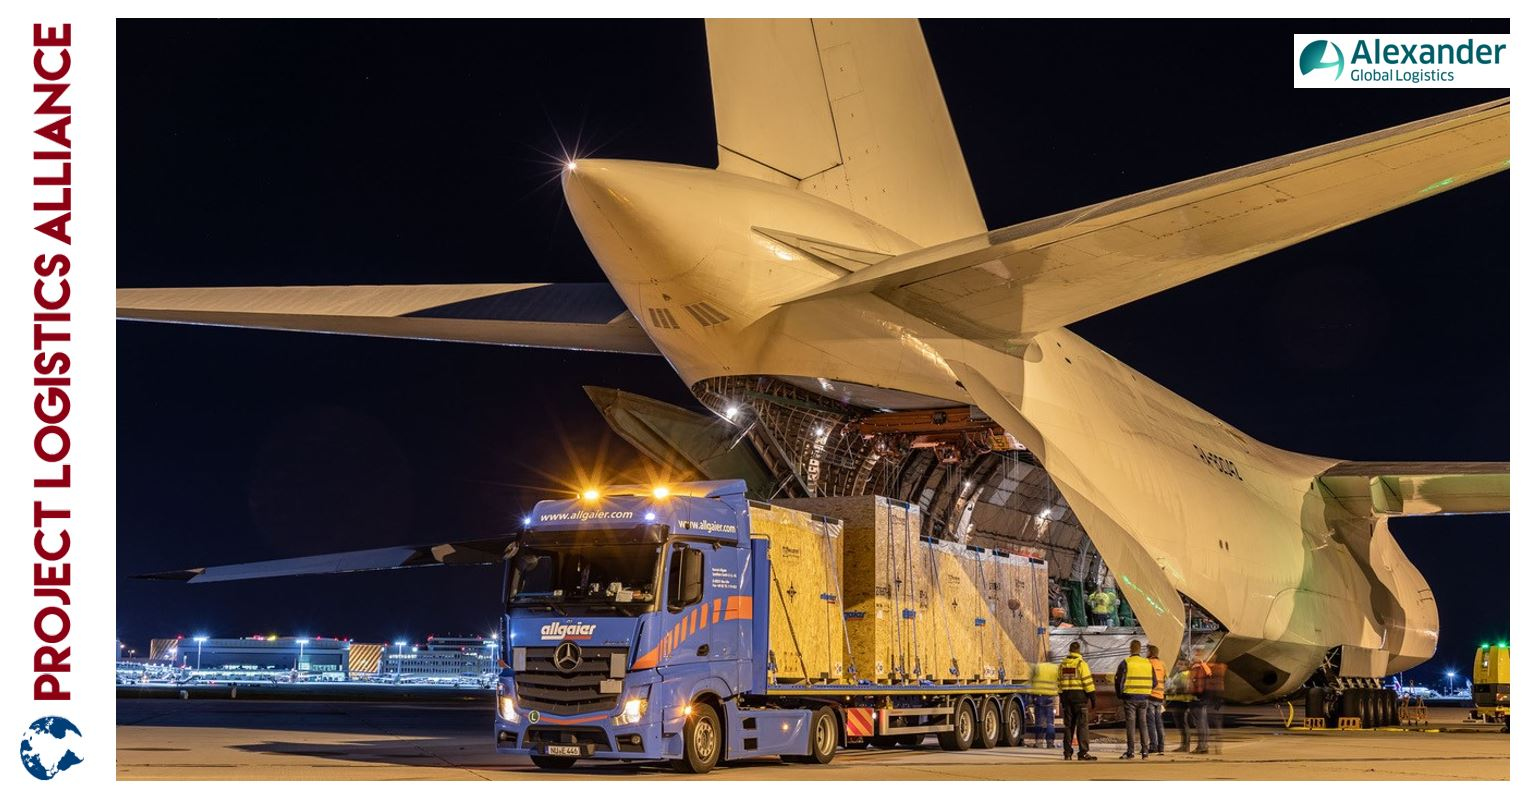 Alexander Global Logistics Charters Antonov-124 for Milling Machines